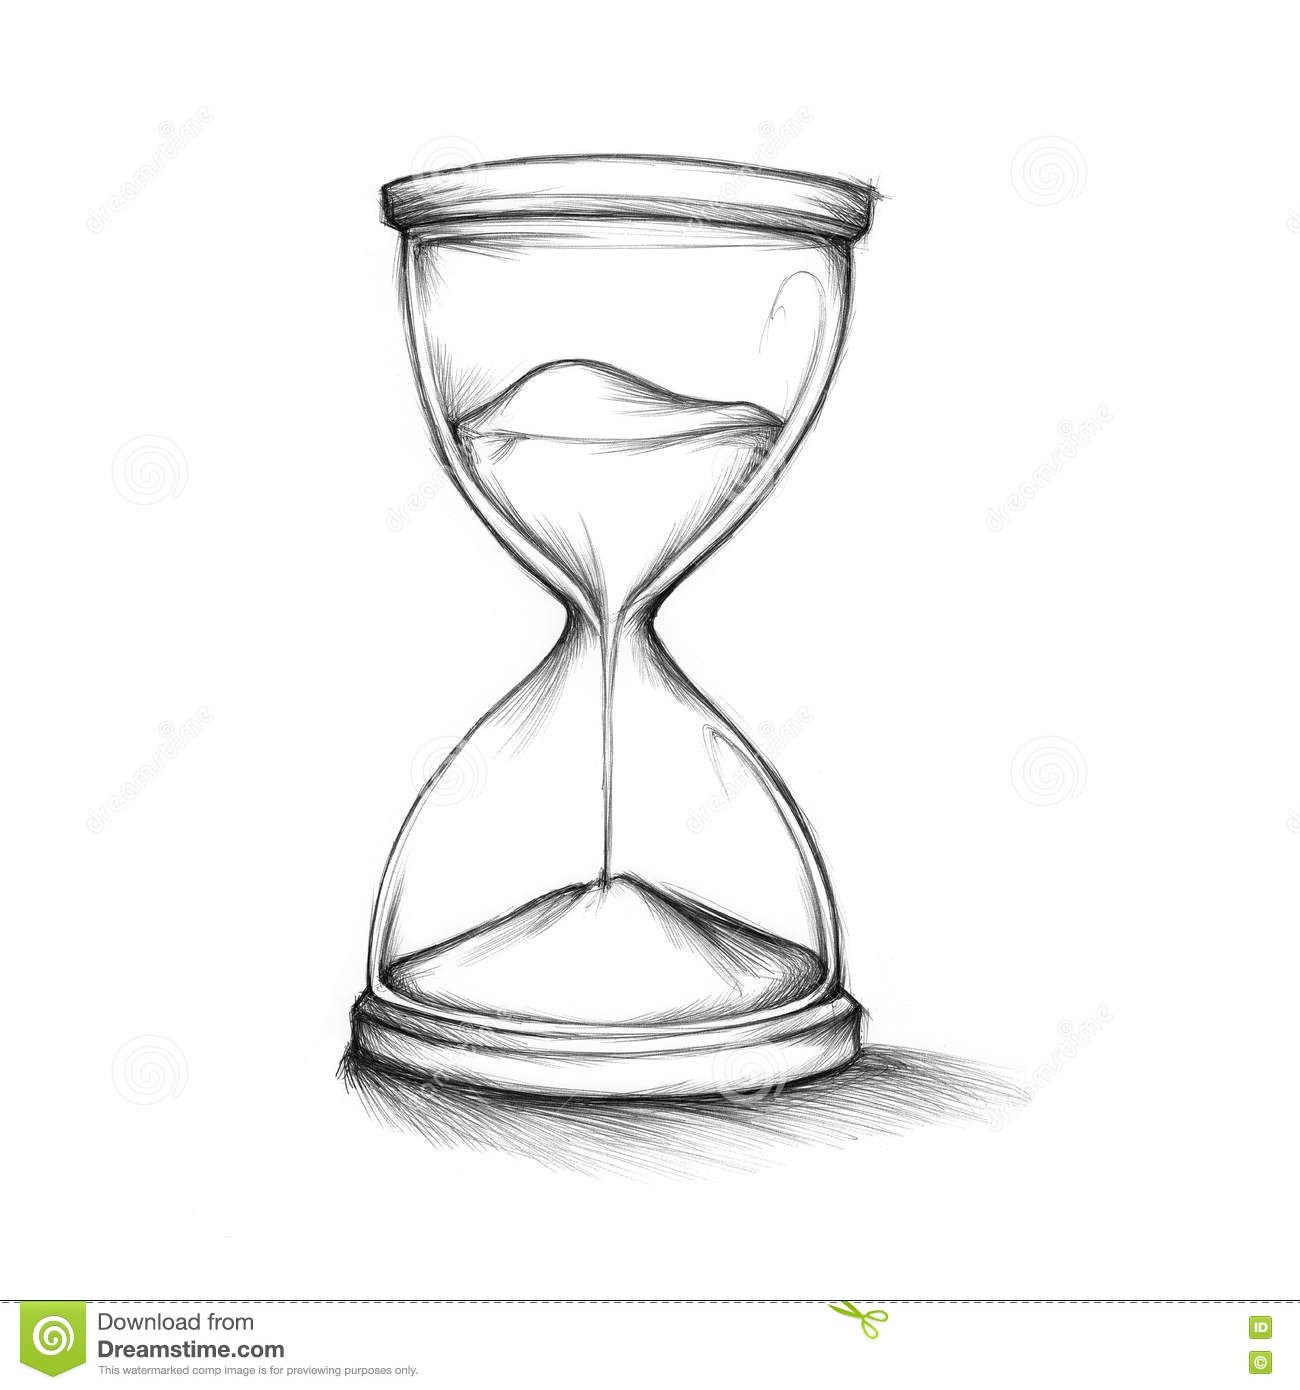 Hourglass drawing  Drawn Hourglass Stock Illustration - Image: 77030546